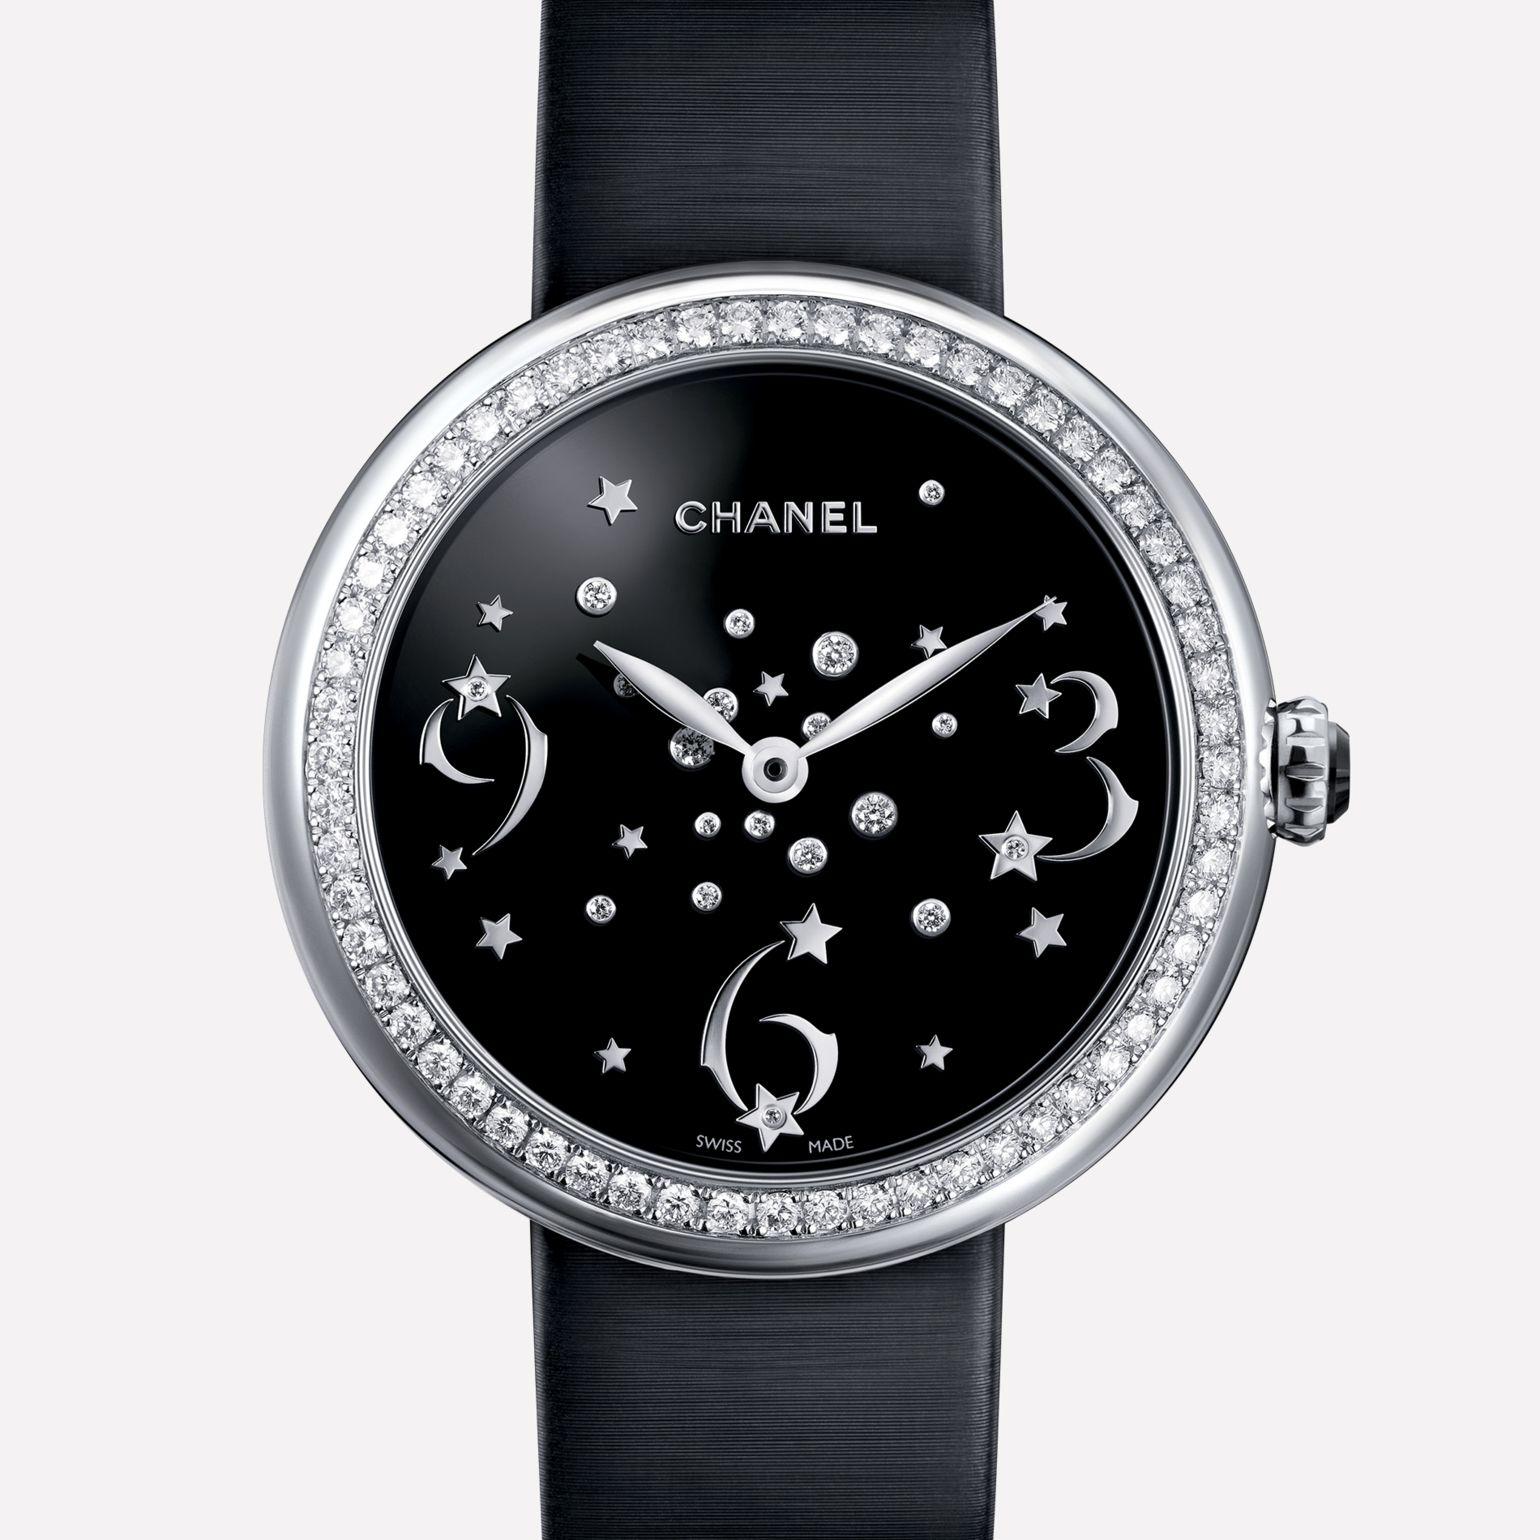 Mademoiselle Privé Numerals, comets and diamonds